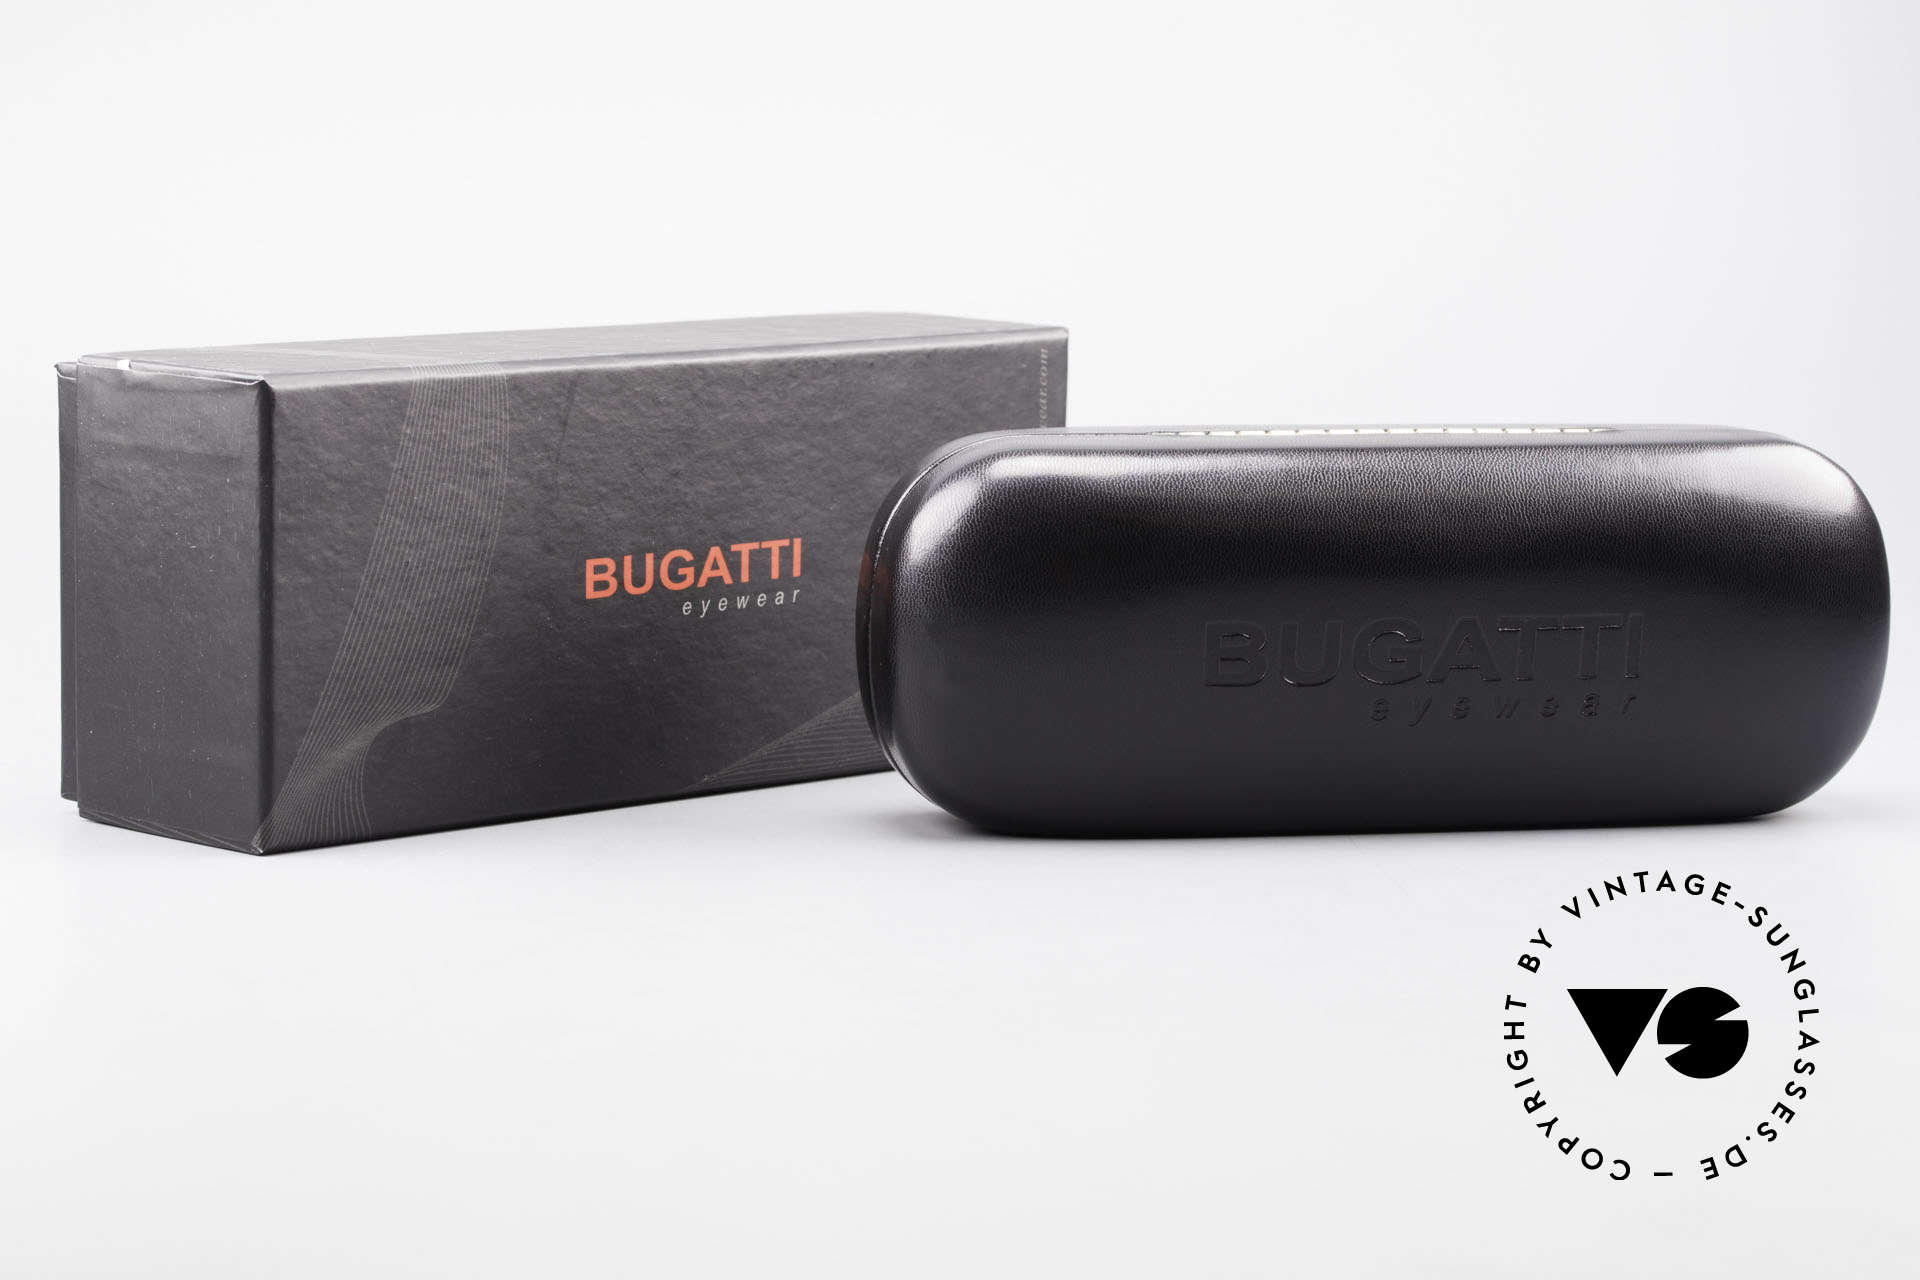 Bugatti 529 Ebony Titanium Eyeglasses XL, Size: large, Made for Men